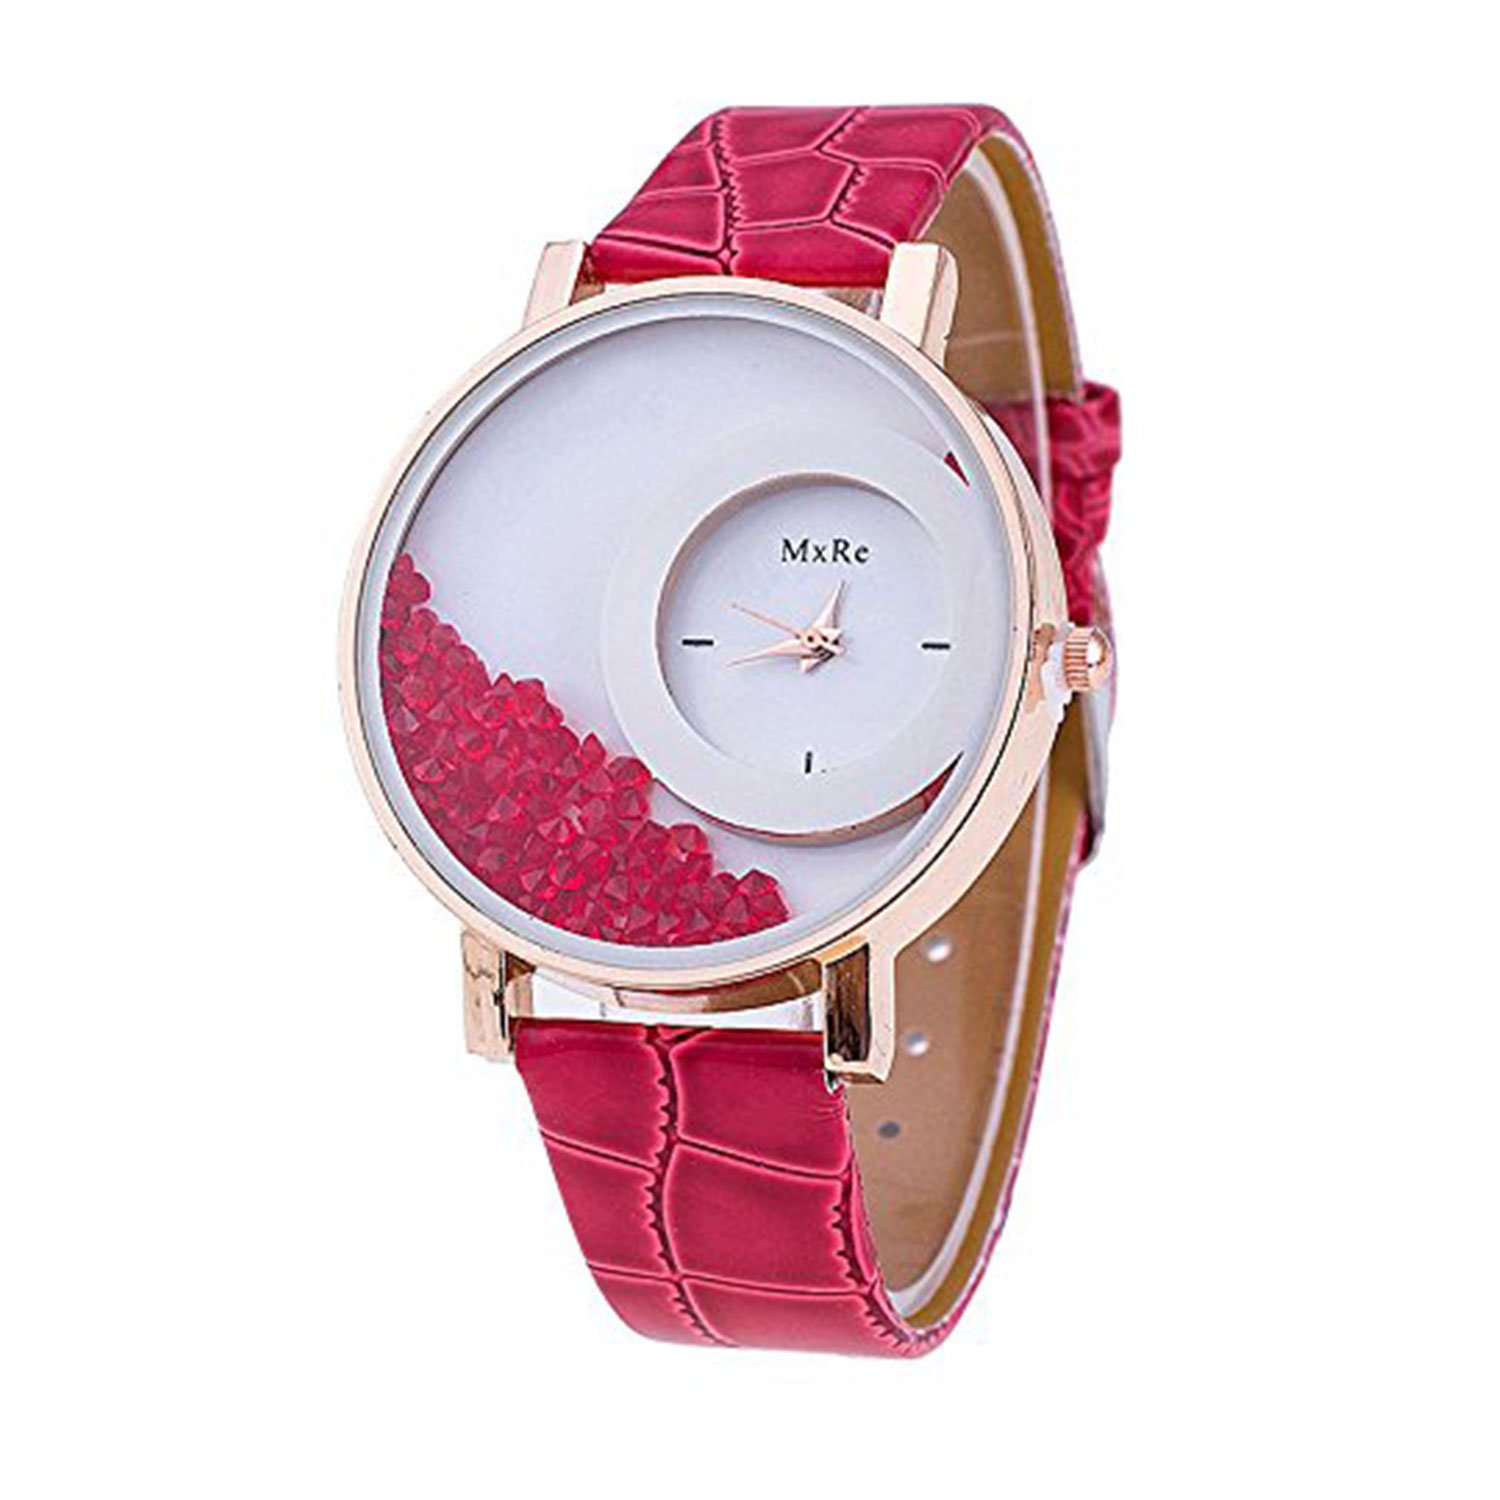 Buy Rustet Analogue Diamond Round Dial Wrist Women S Girl S Watch Red Online At Low Prices In India Amazon In